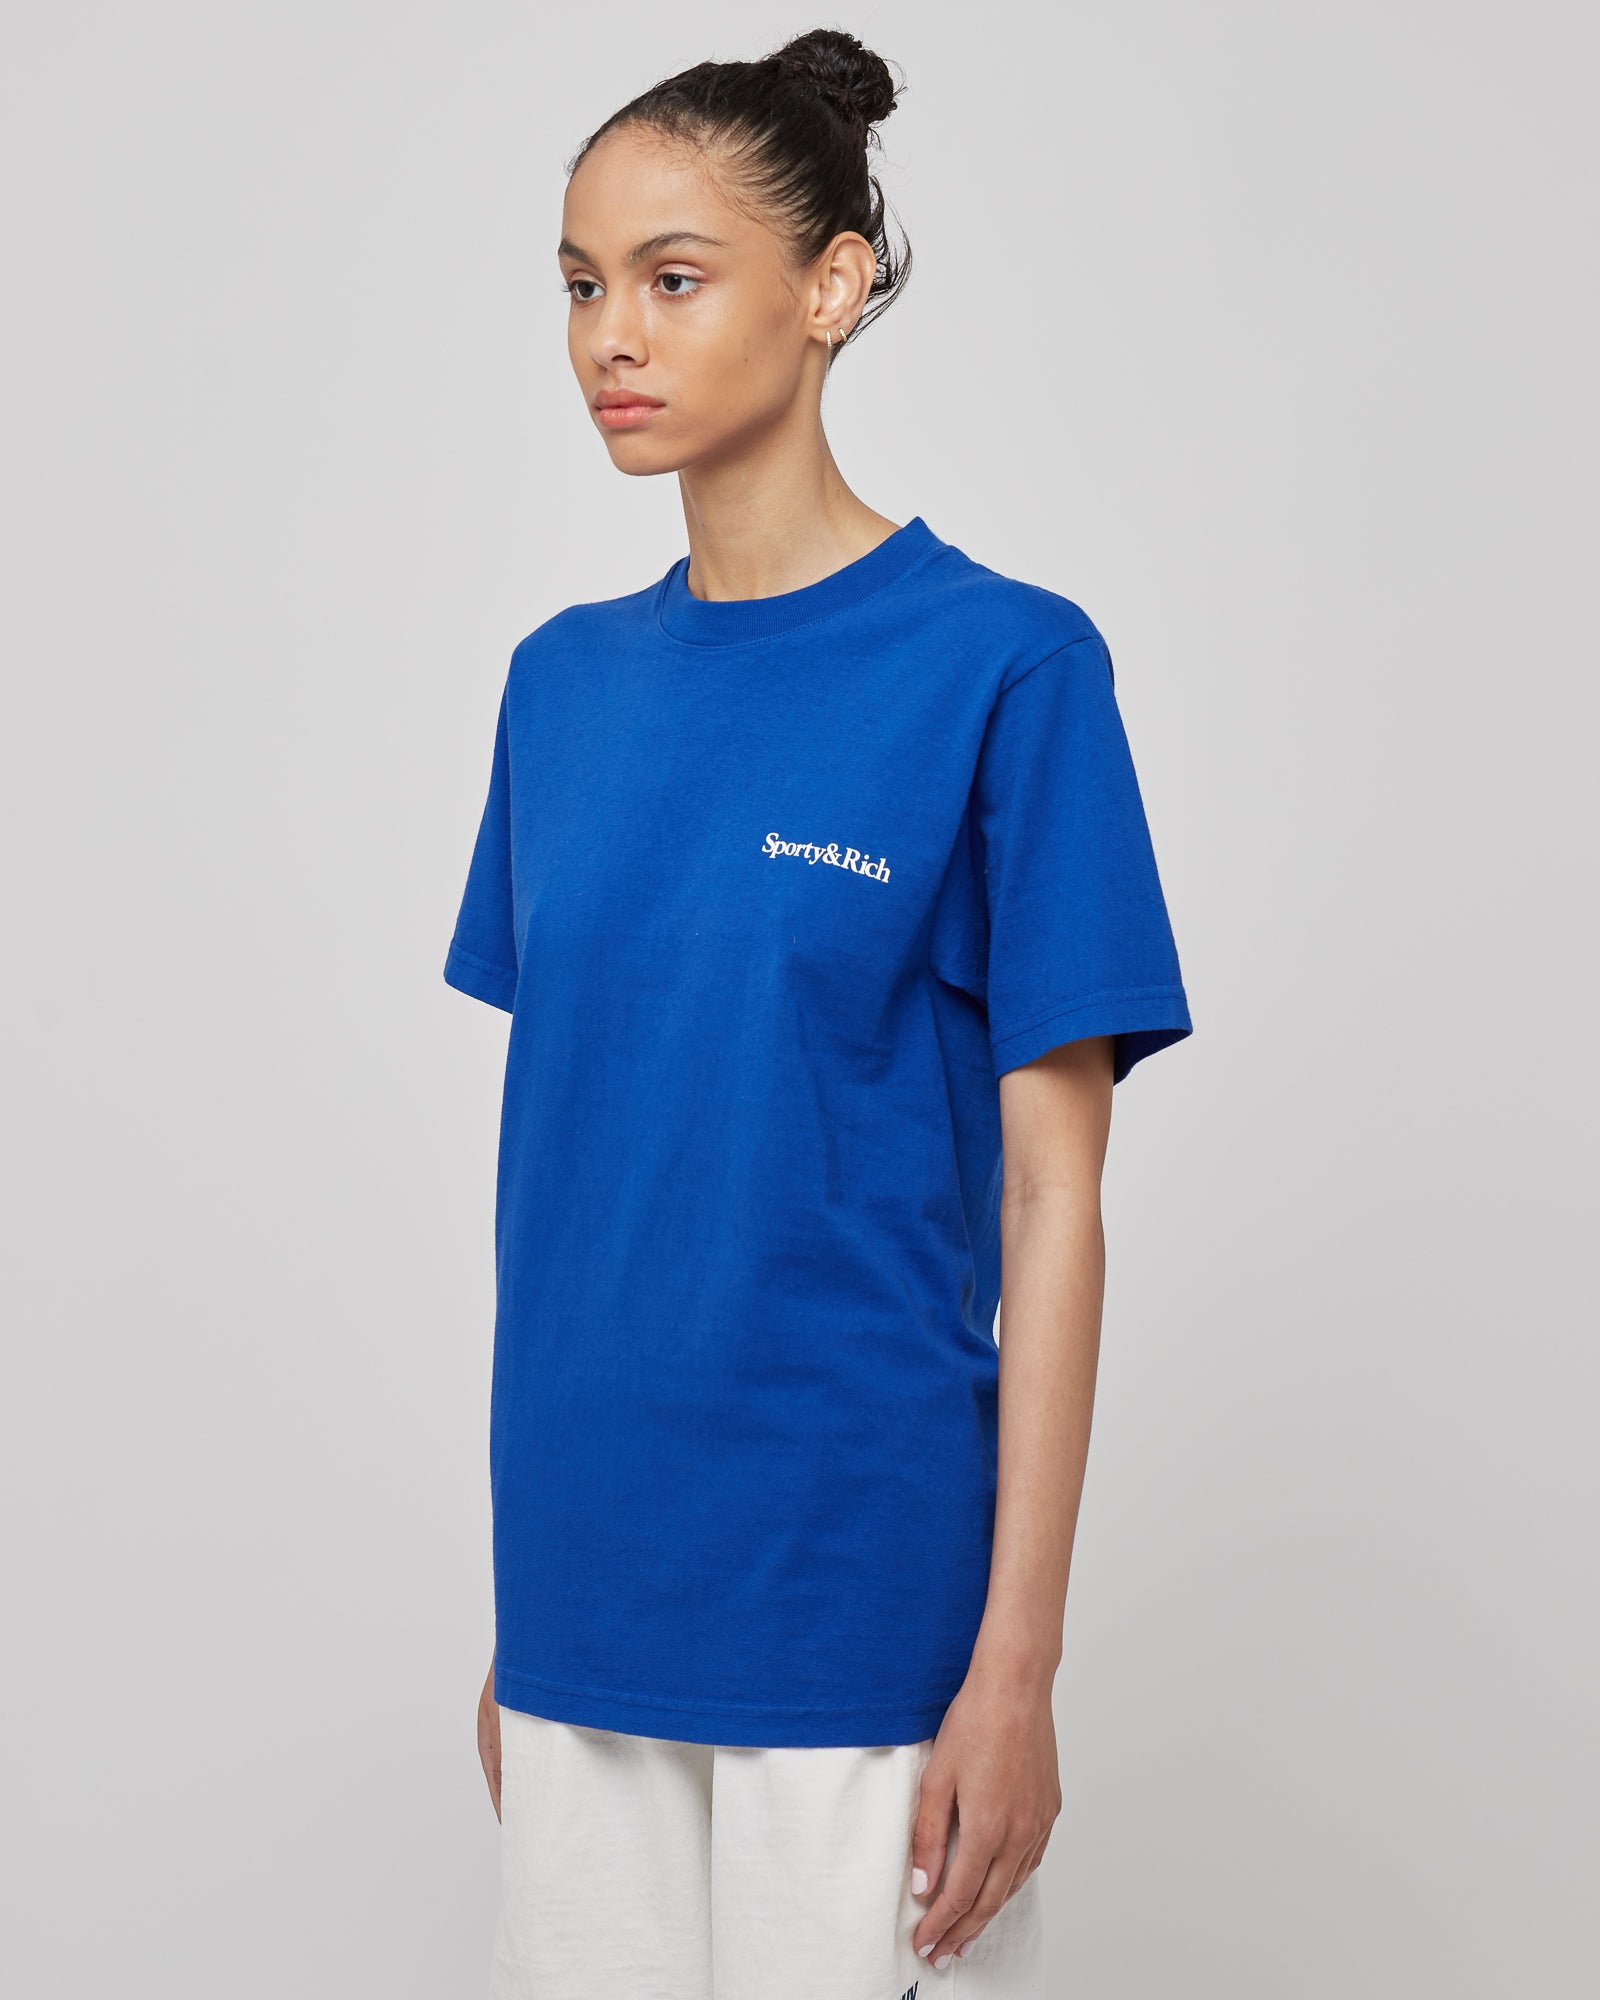 Health is Wealth T-Shirt in Lapis/White